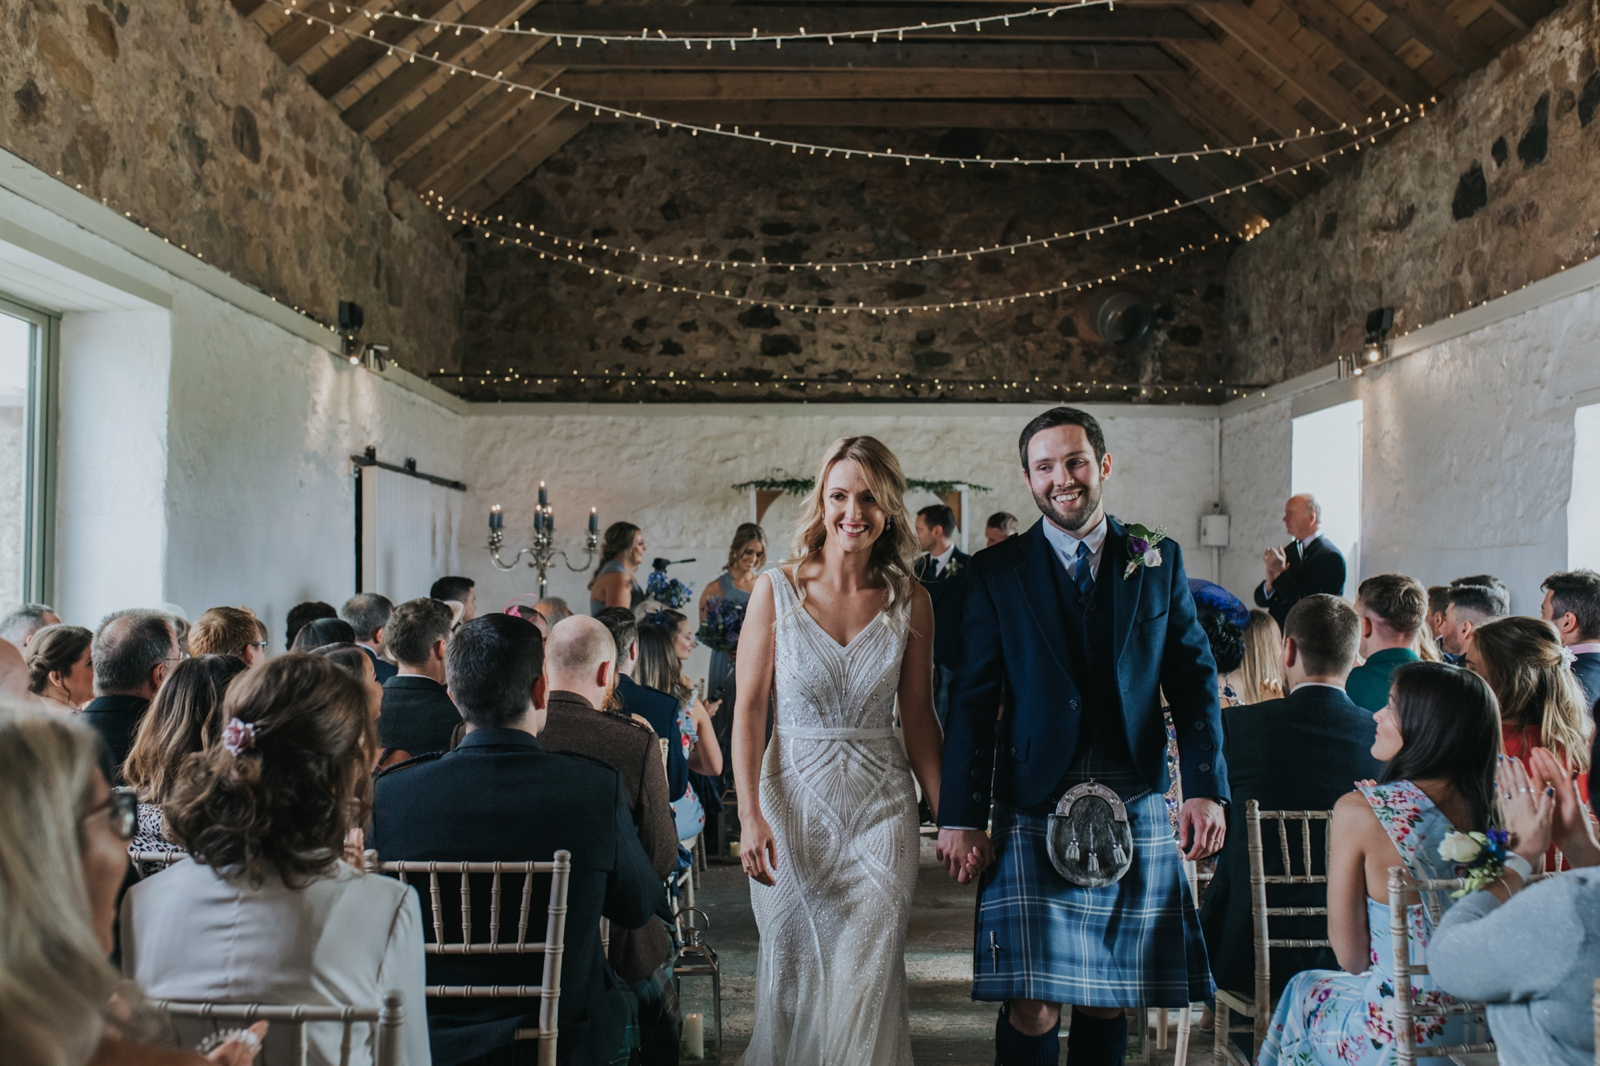 cow-shed-crail-rustic-wedding-gemma-andy-loraine-ross-photographygemma-andy-wedding-0402.jpg